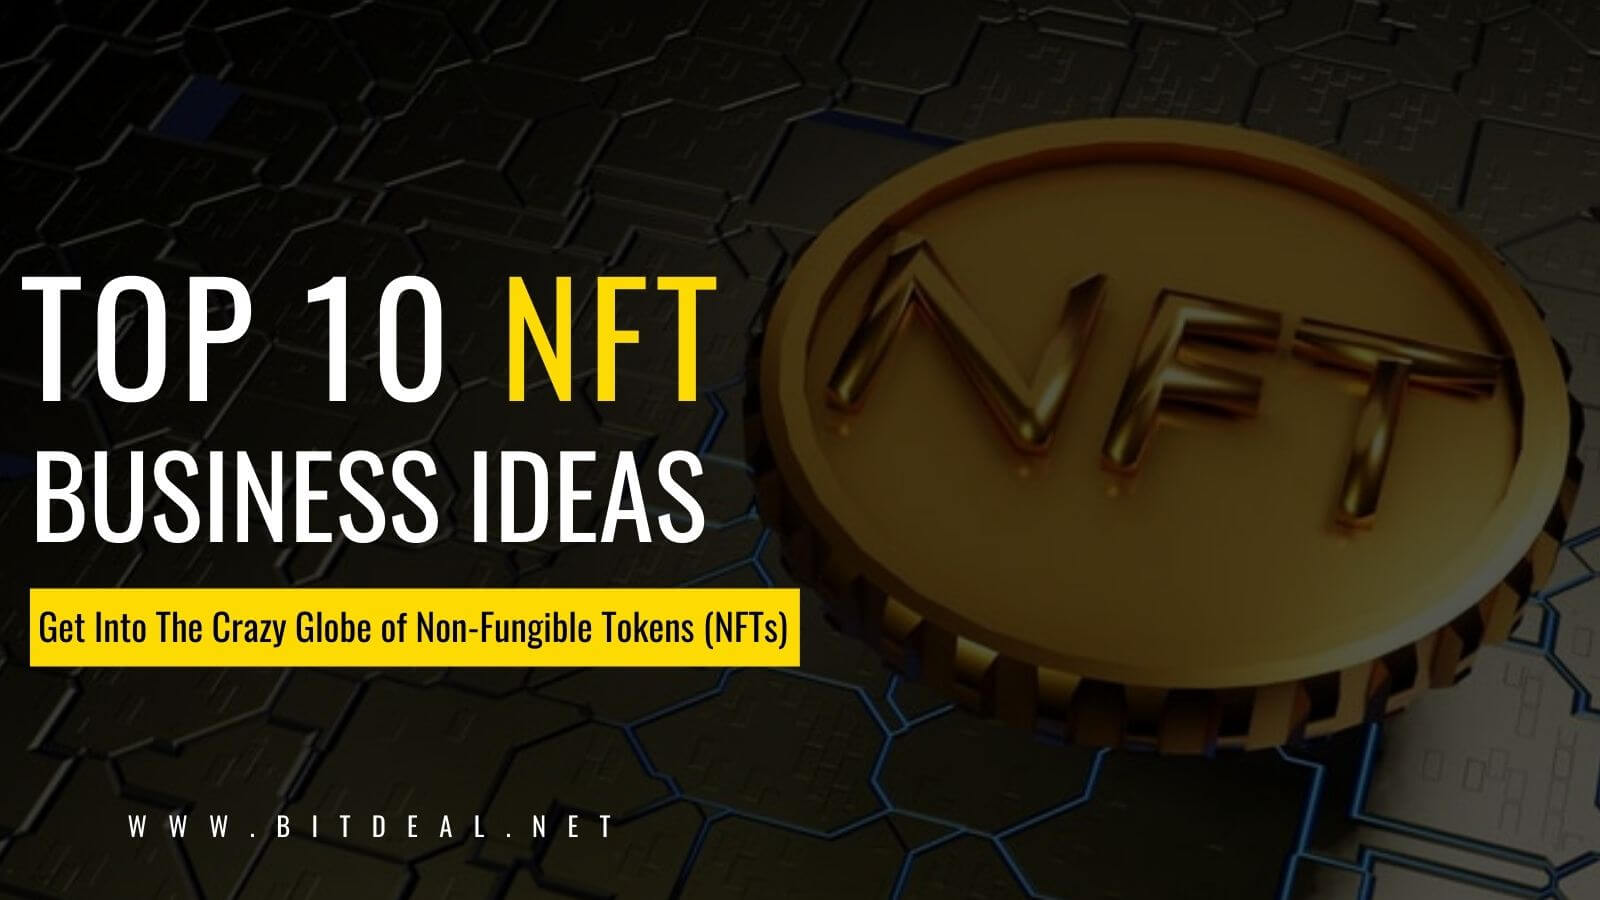 Top 10 Easy To Start NFT Business Ideas For 2021